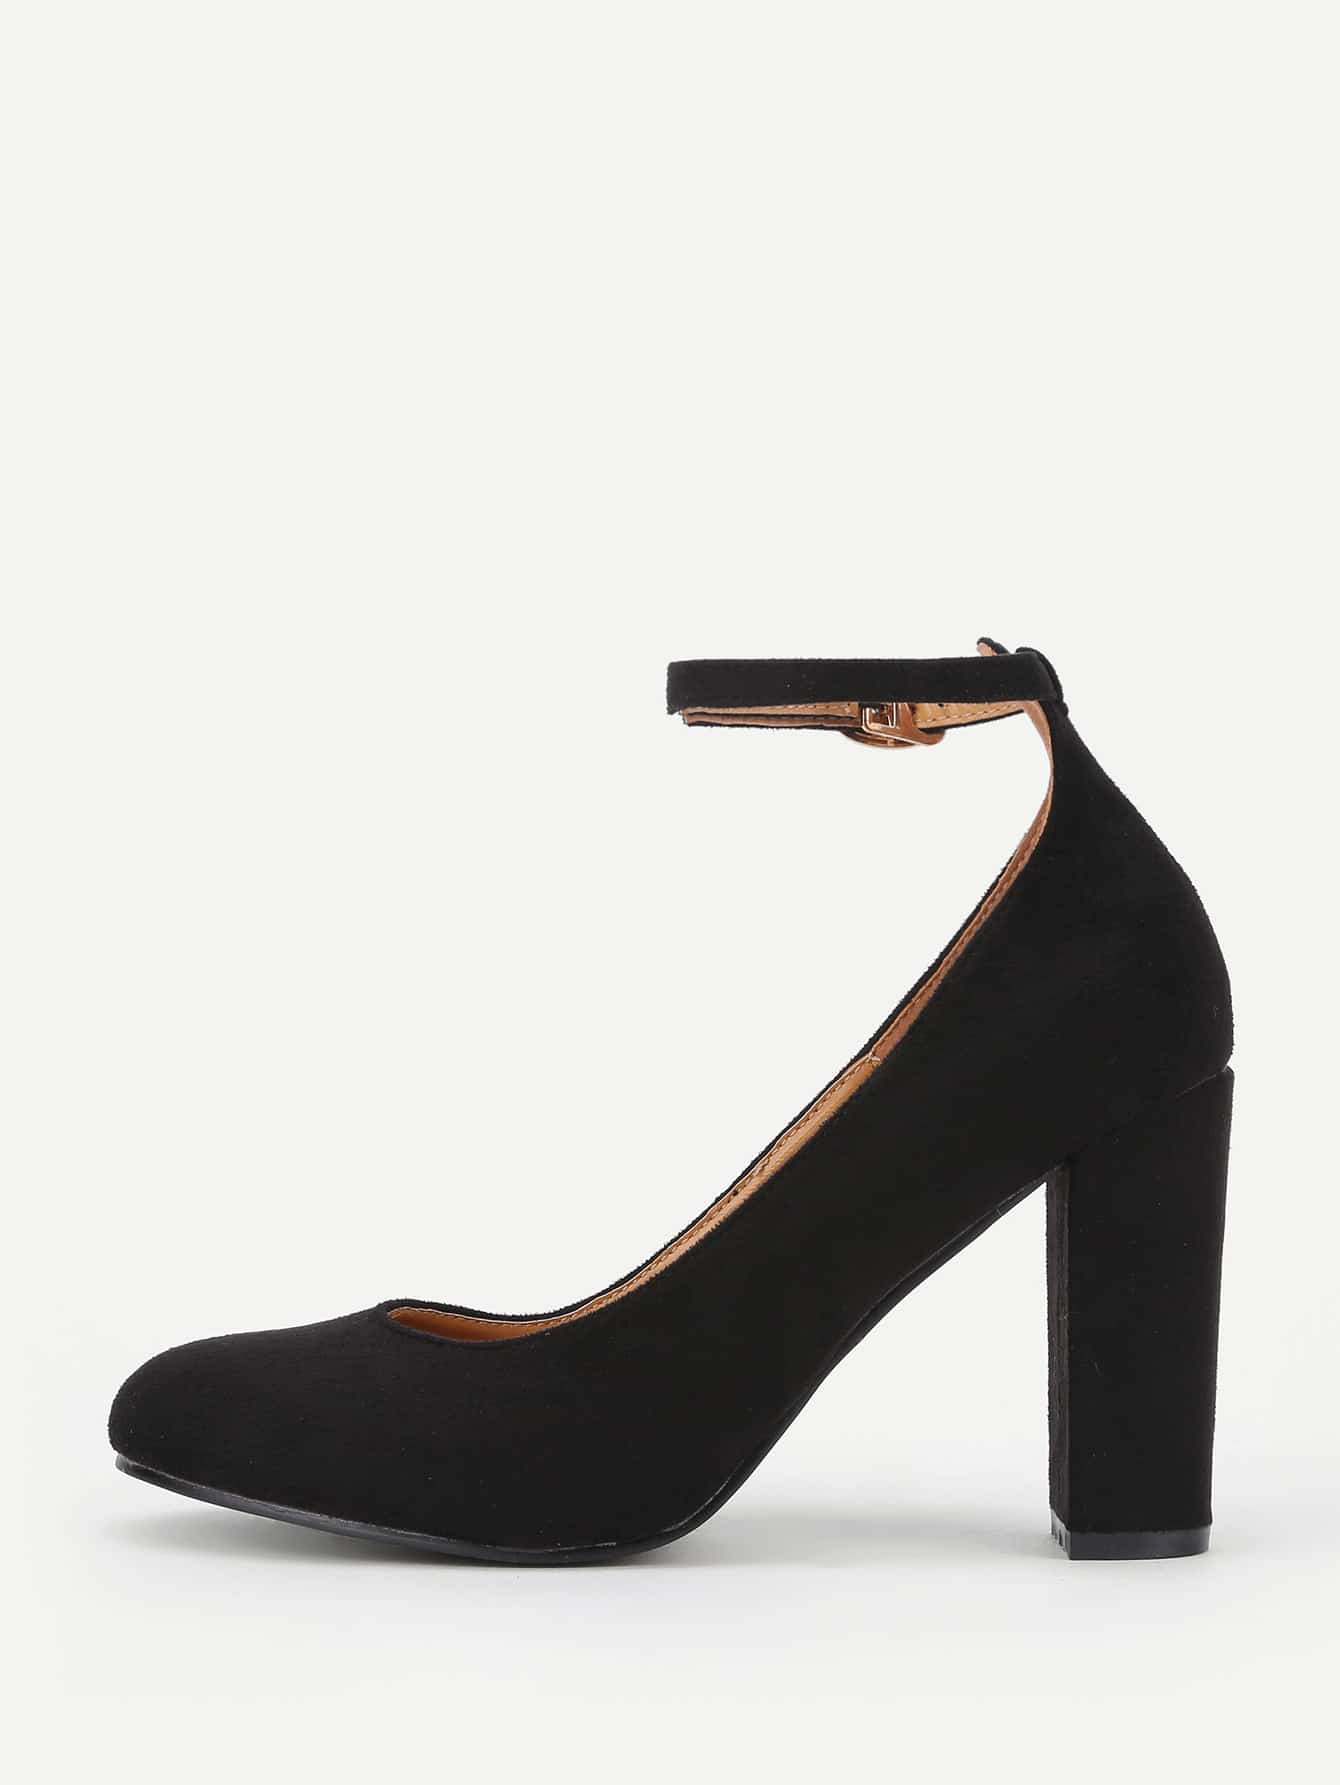 8b2065d81f Ankle Strap Block Heeled Shoes -SheIn(Sheinside)